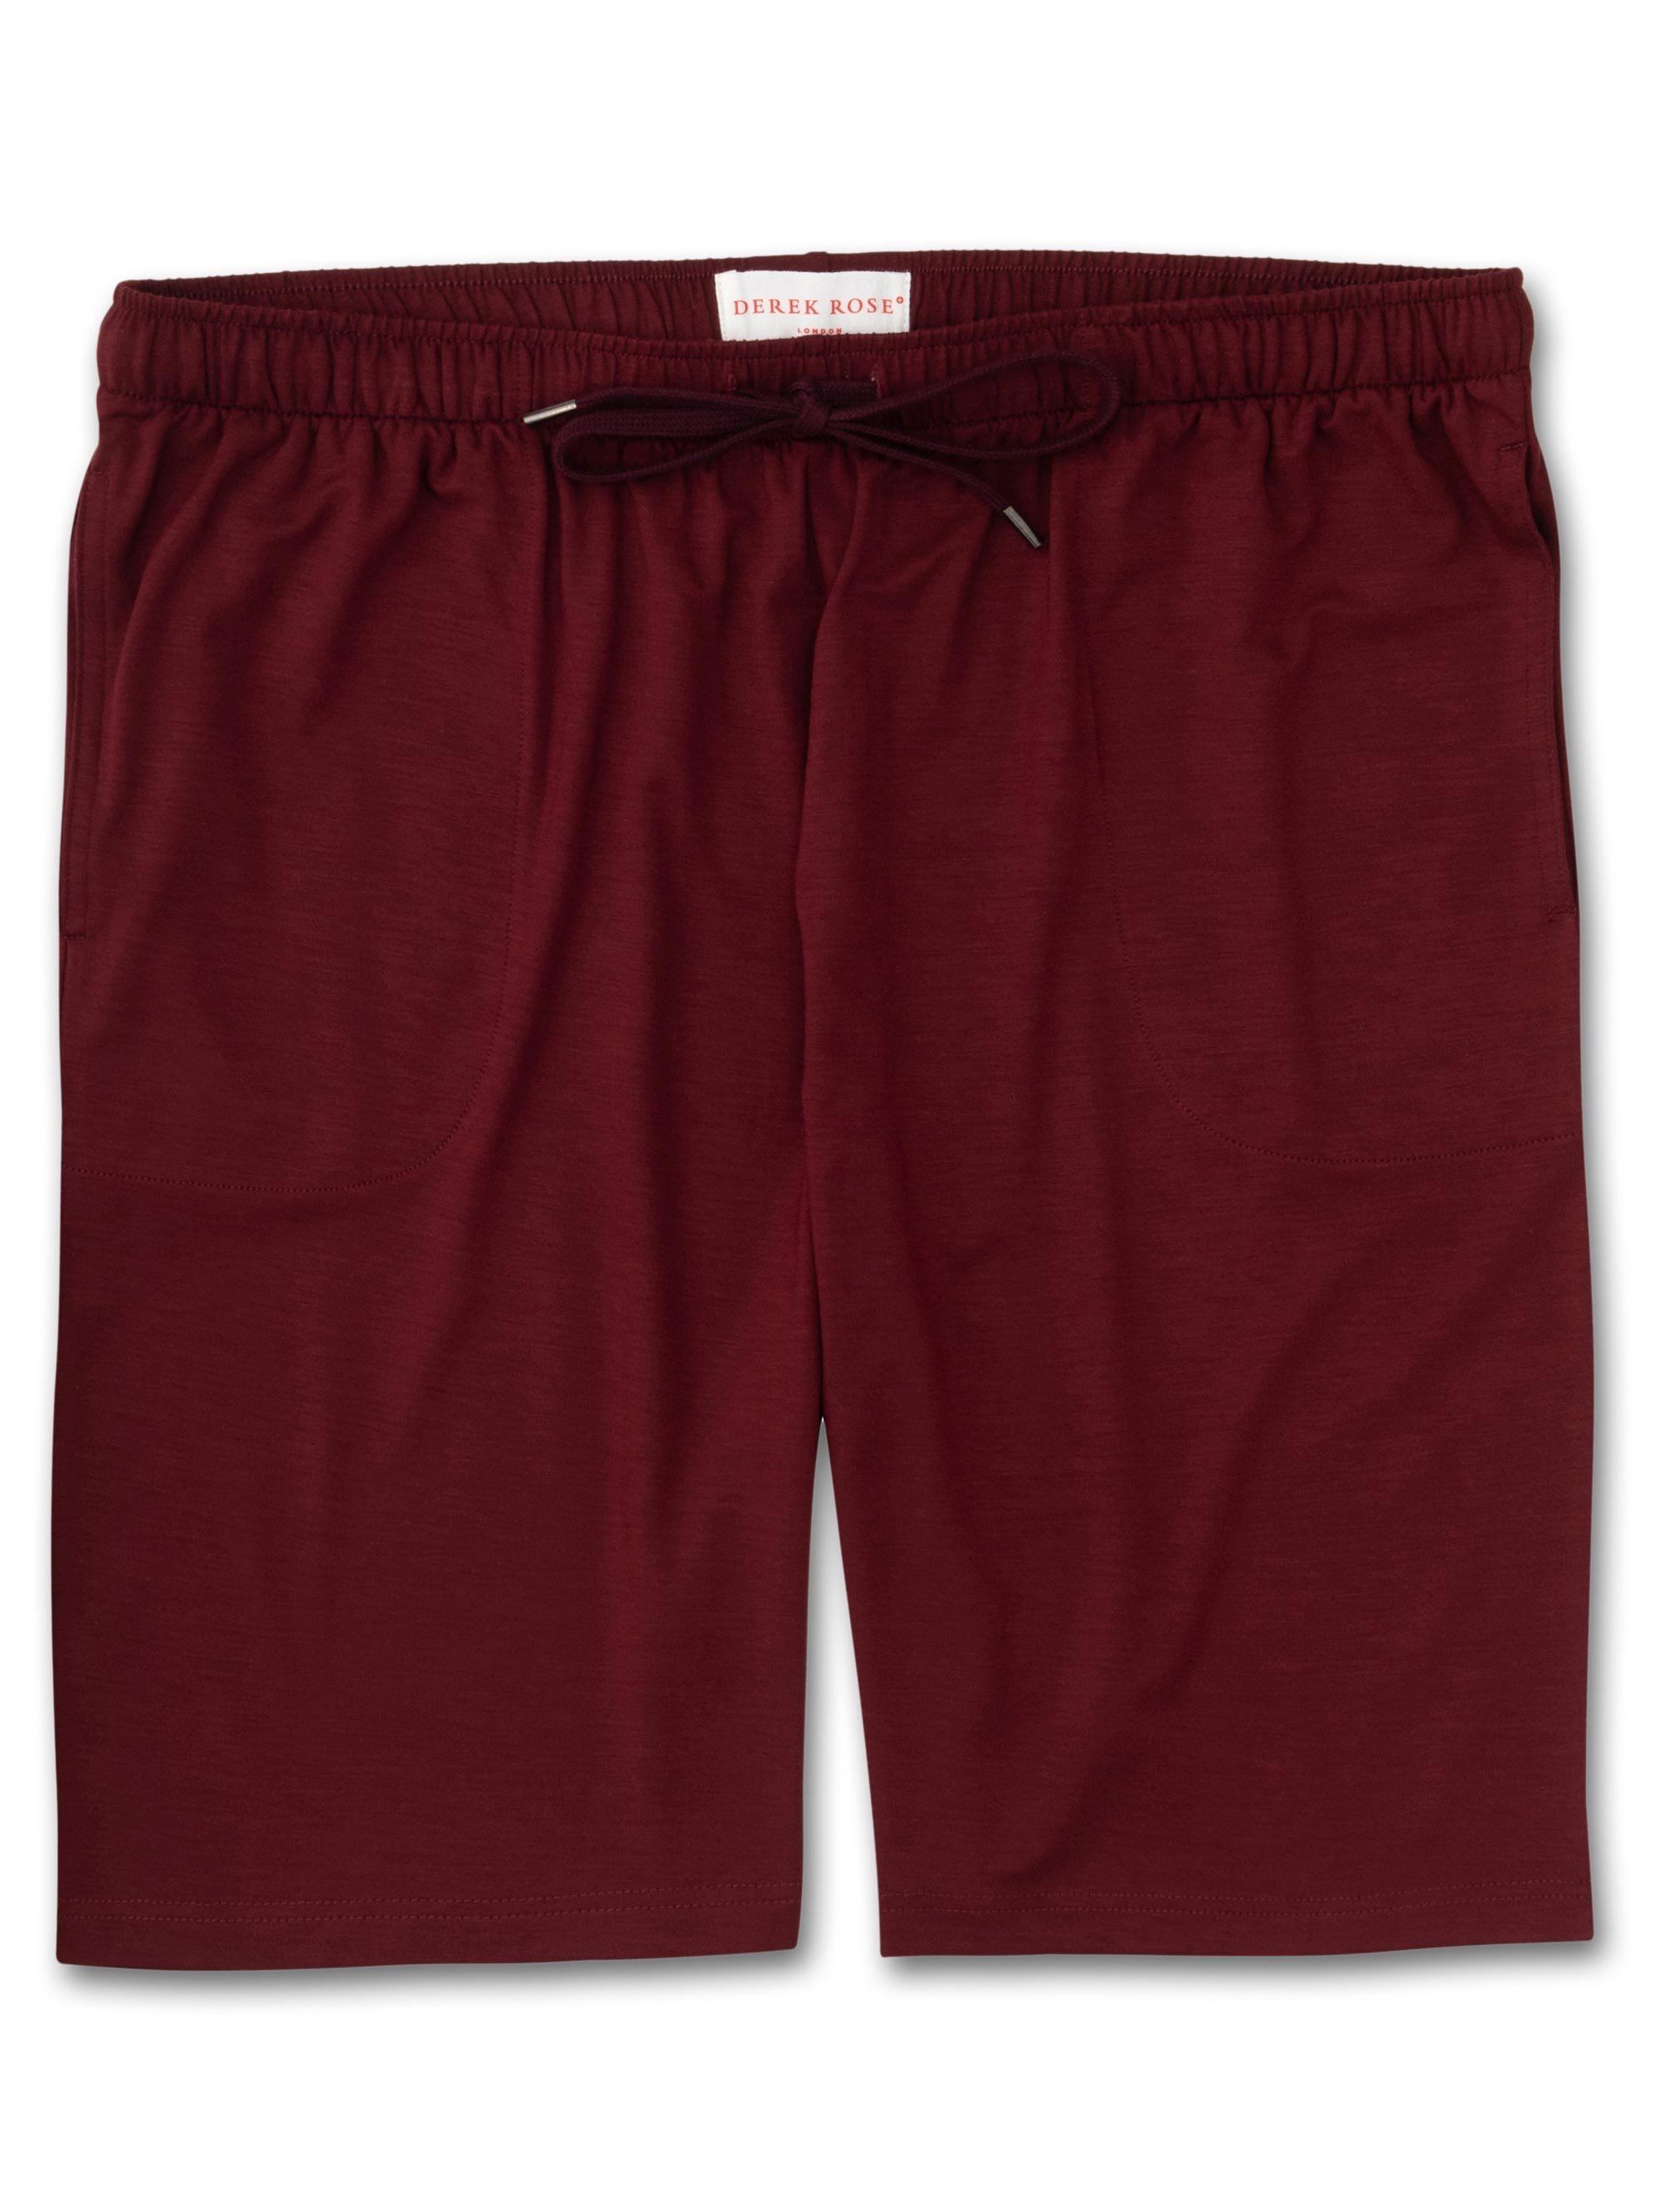 Men's Jersey Shorts Basel 7 Micro Modal Stretch Burgundy